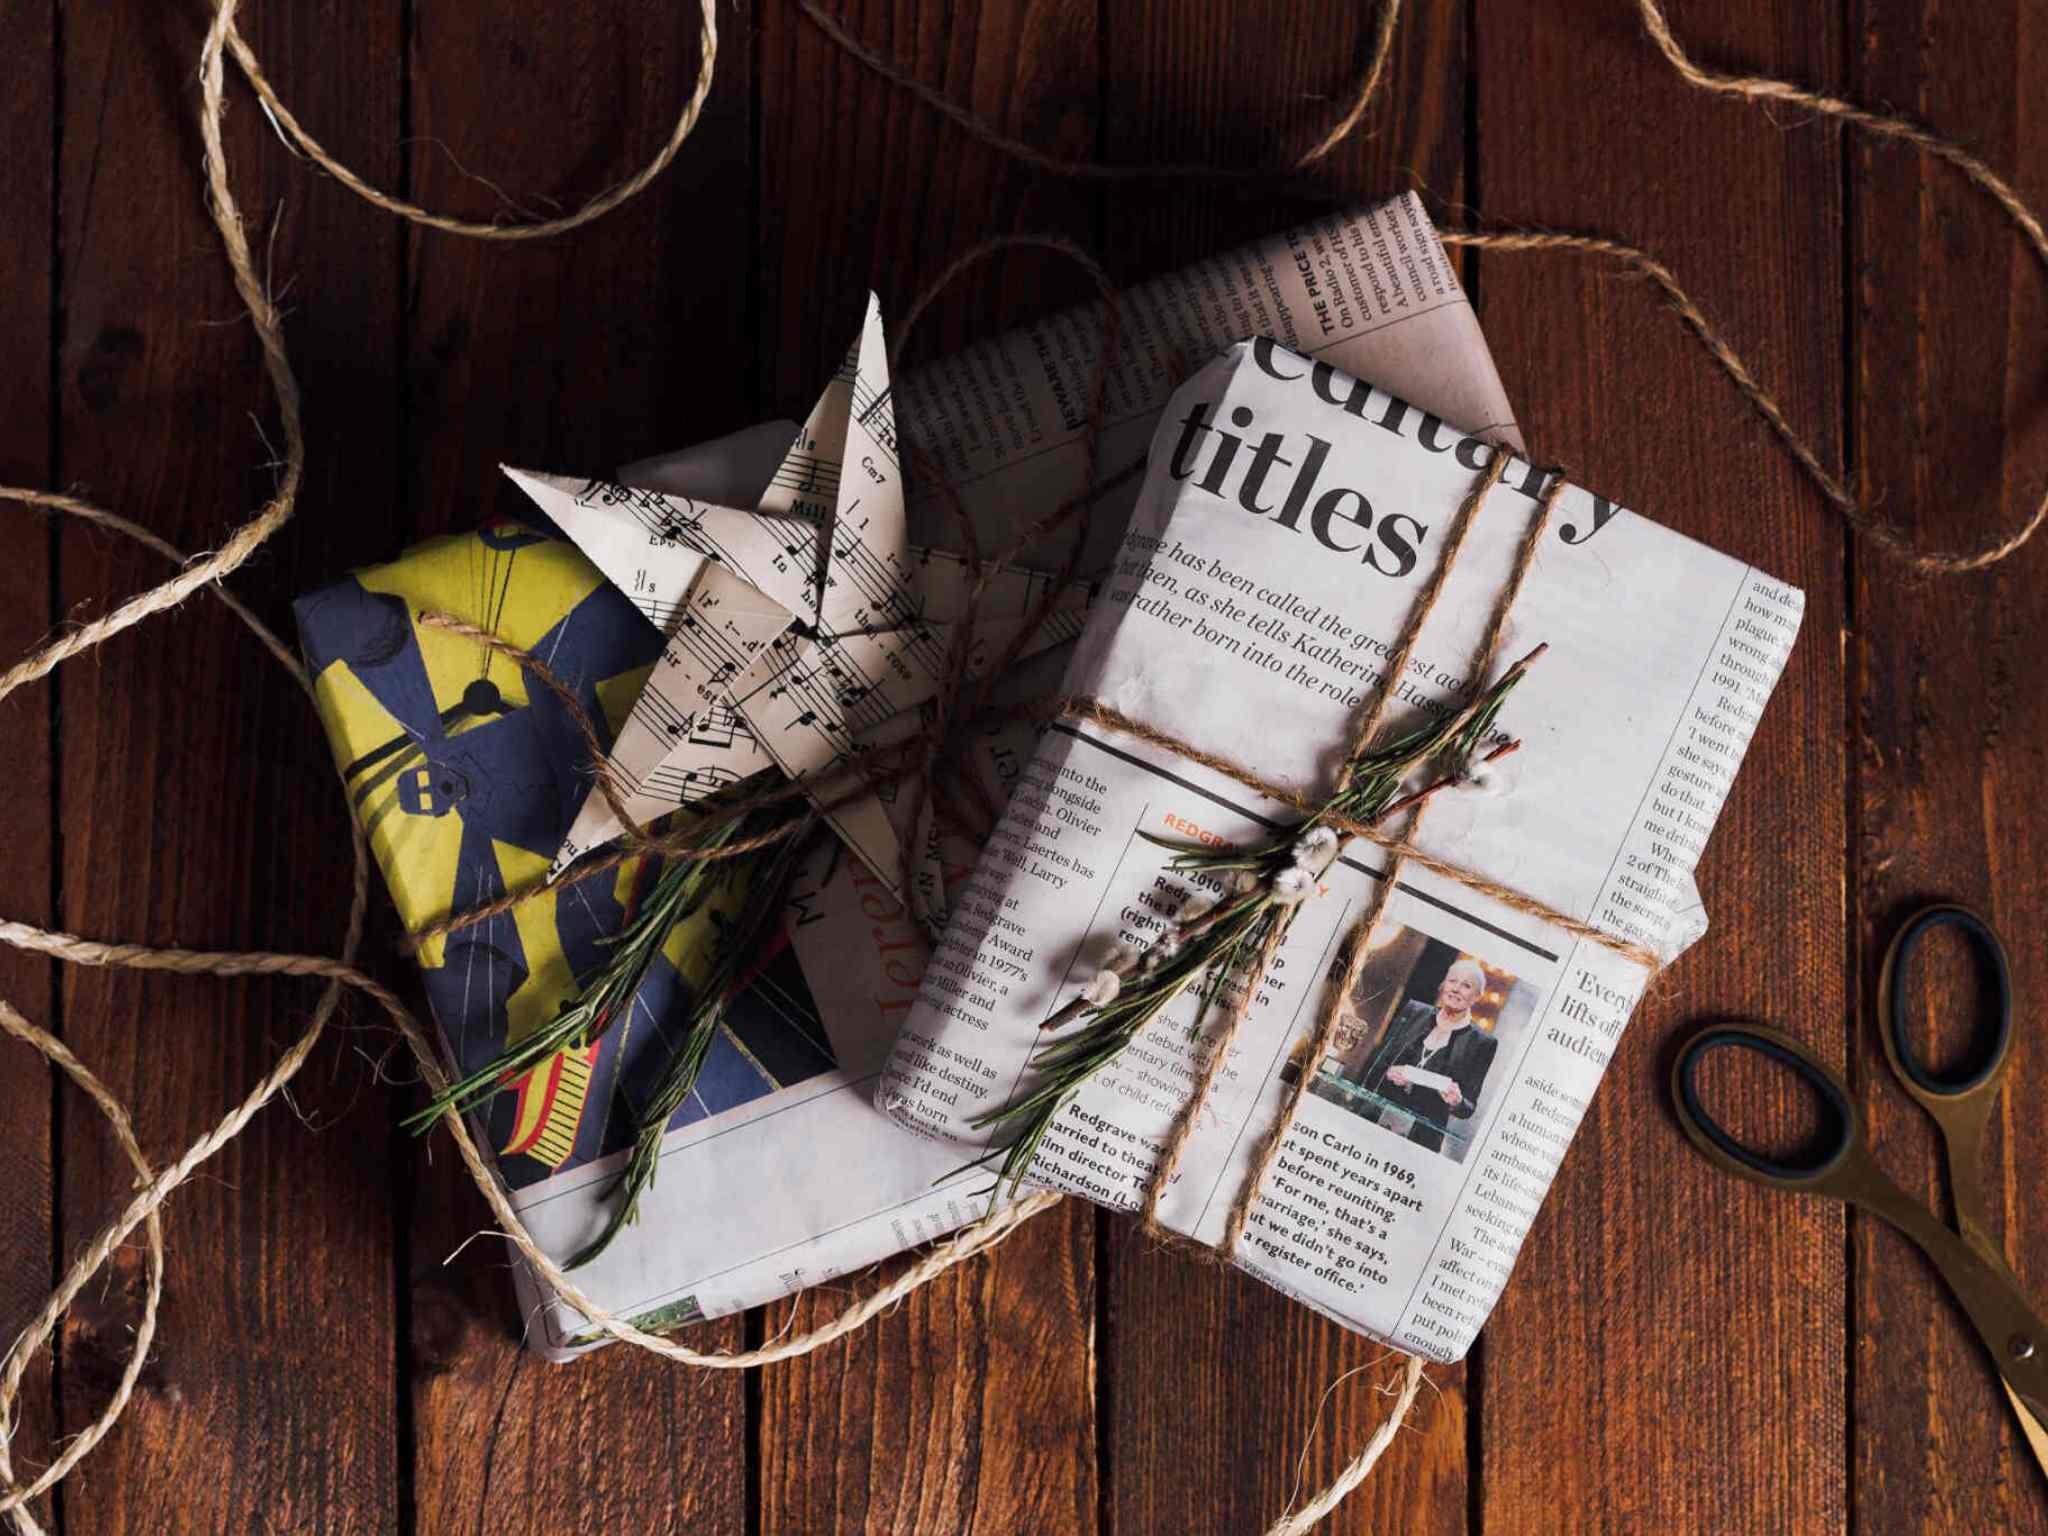 Christmas gifts wrapped with newspaper to celebrate a zero waste Christmas